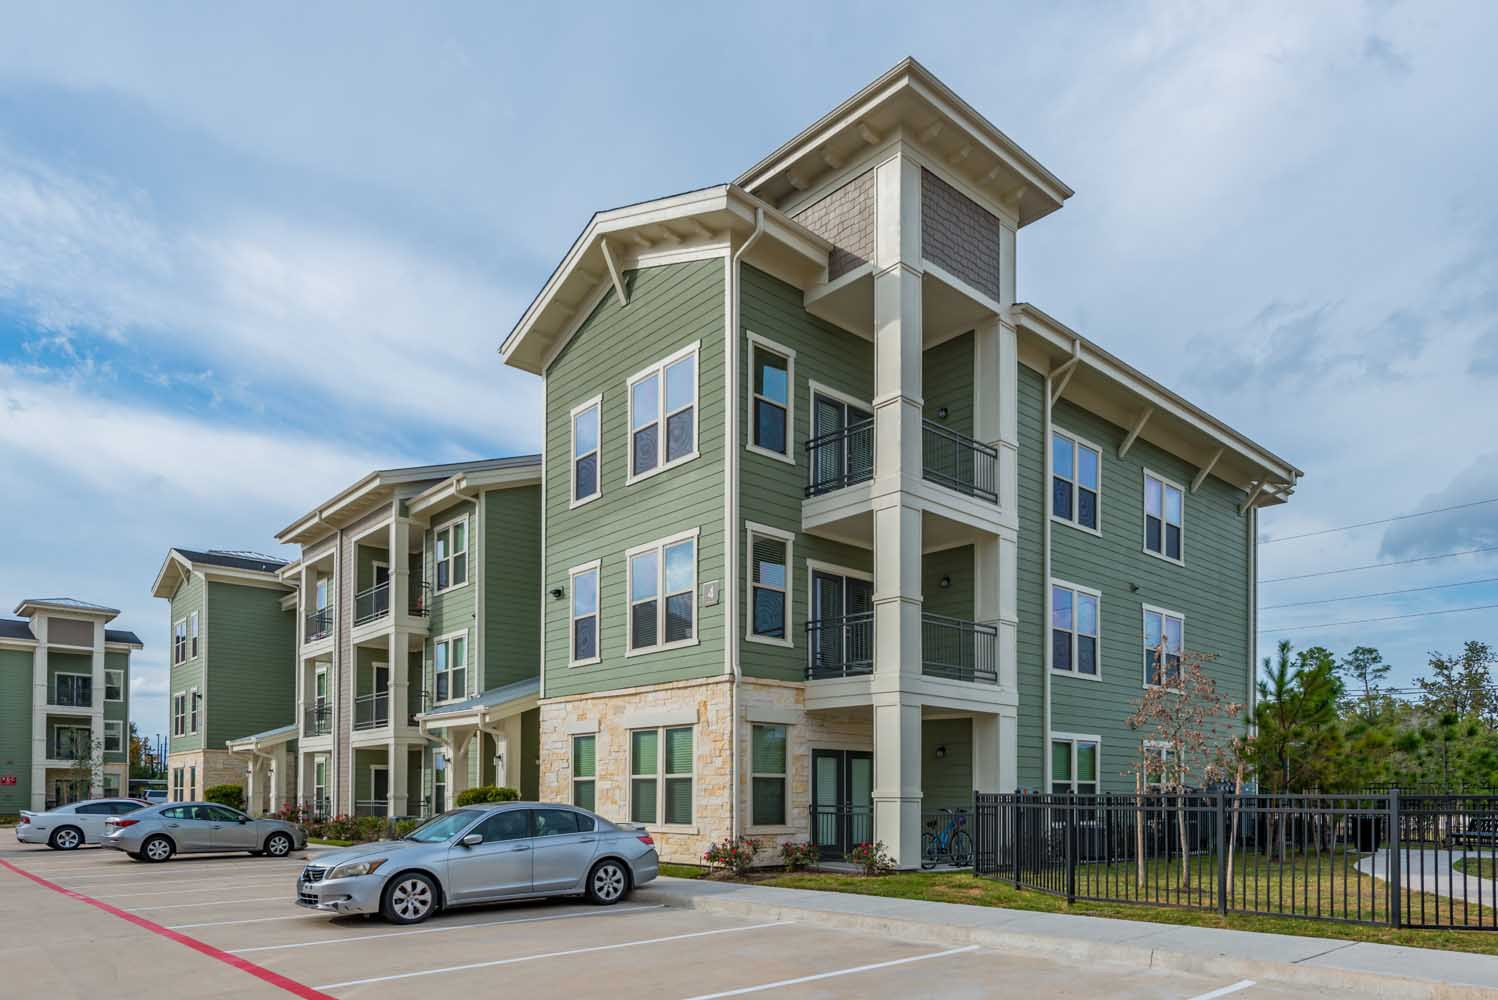 Apartments Near ITT Technical Institute-Houston North Harpers Retreat for ITT Technical Institute-Houston North Students in Houston, TX